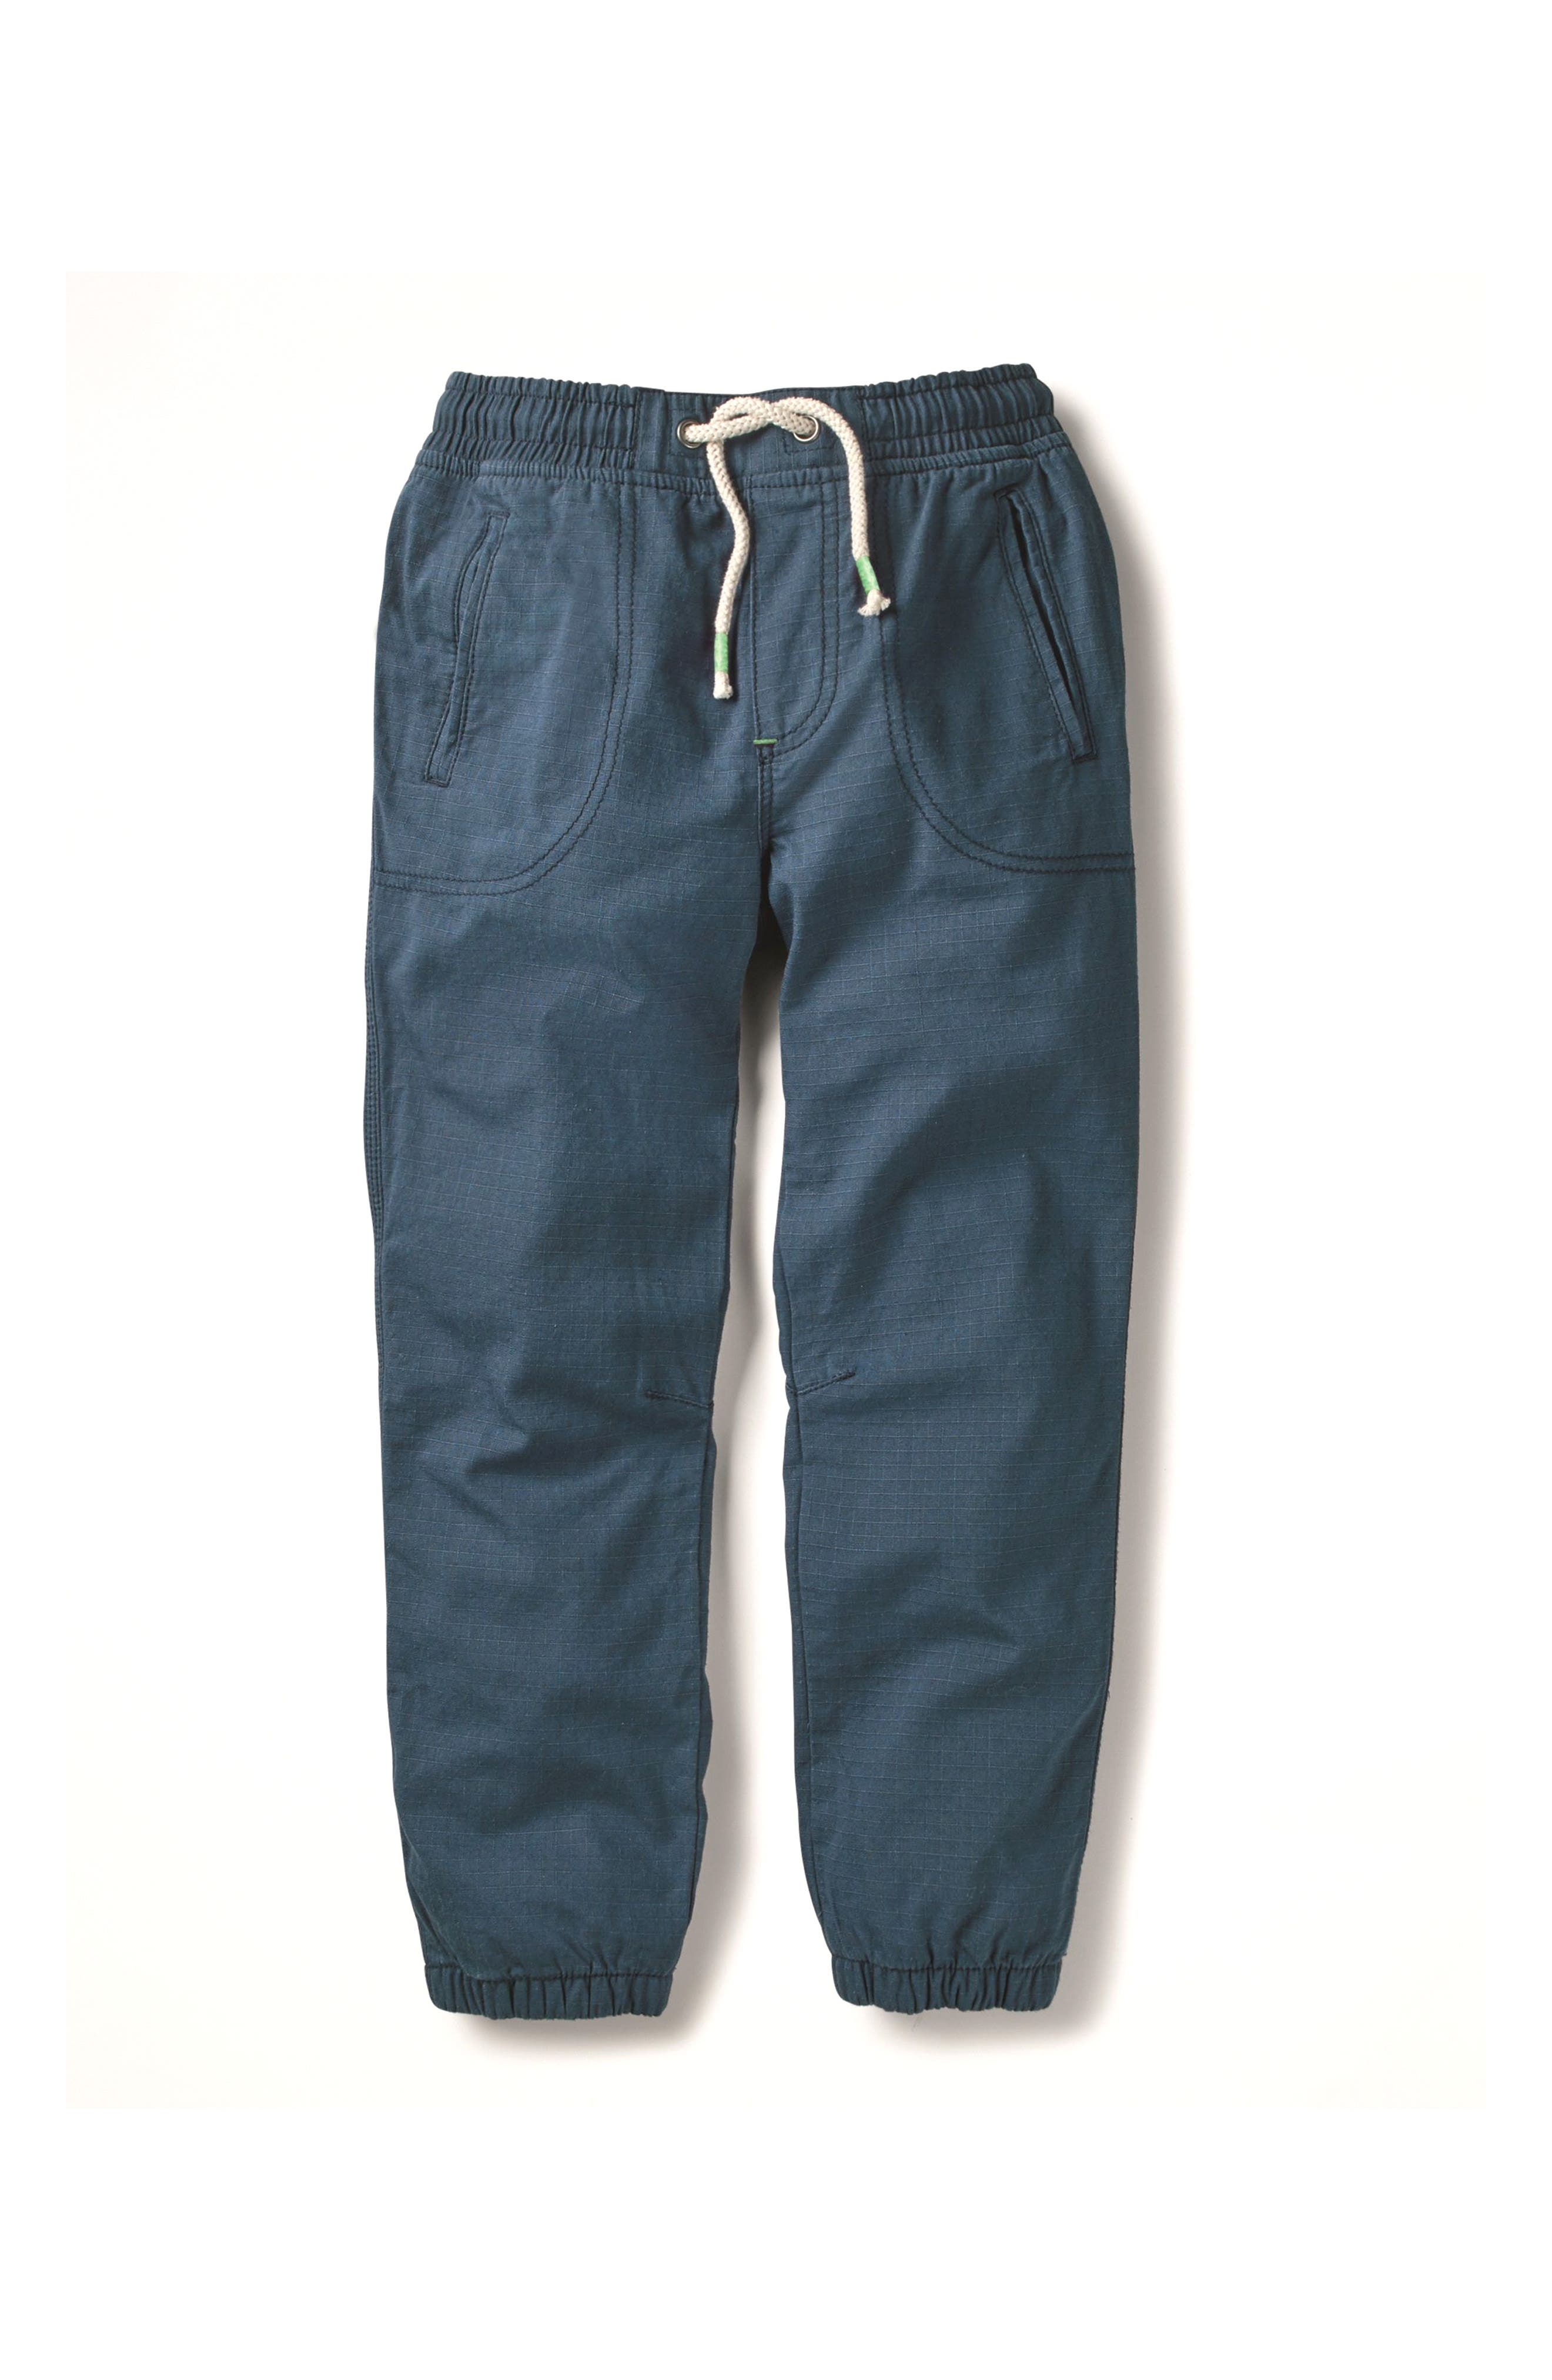 Lined Sweatpants,                             Main thumbnail 2, color,